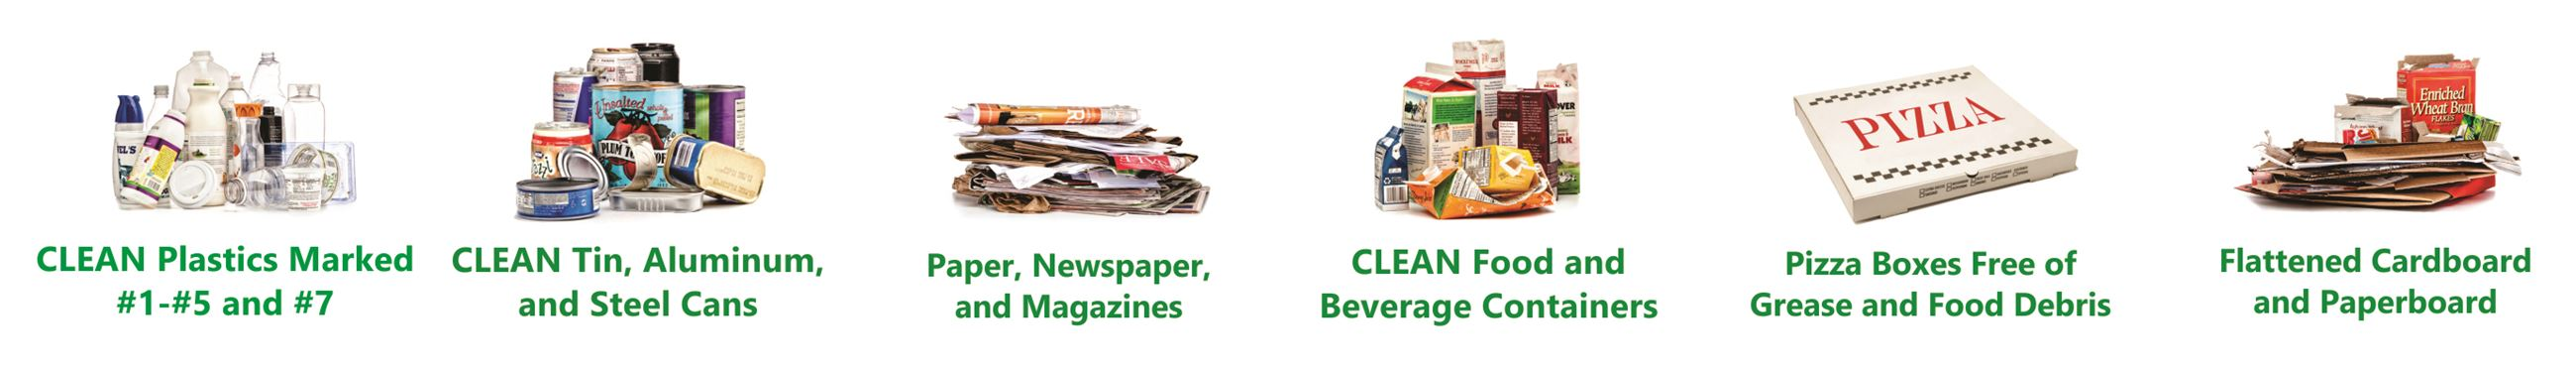 Images and text of 6 household items that are ok to recycle